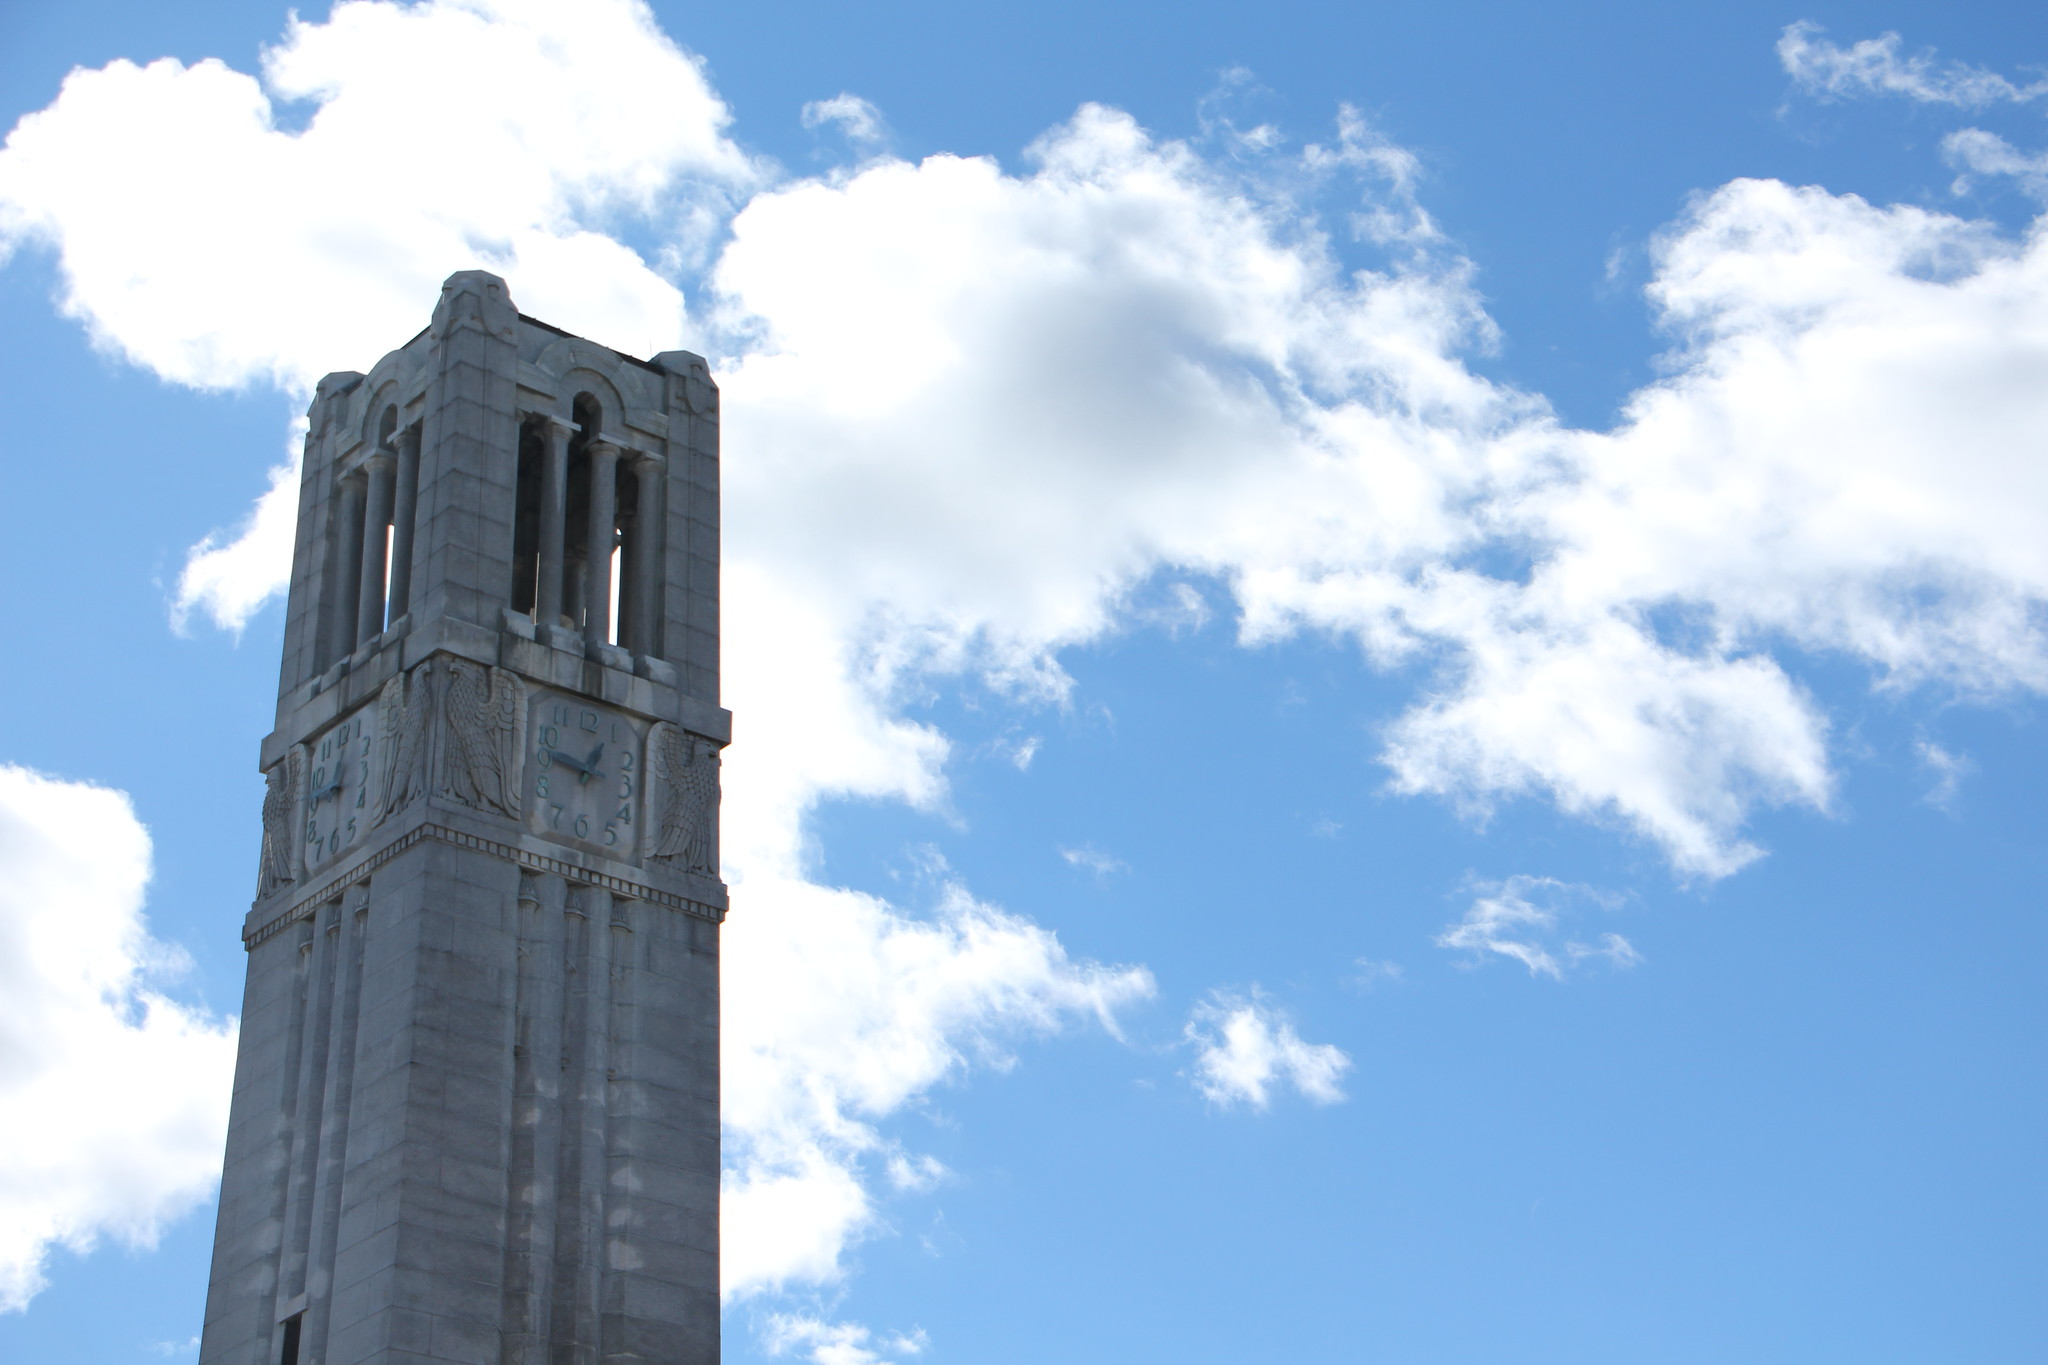 The bell tower in front of blue skies